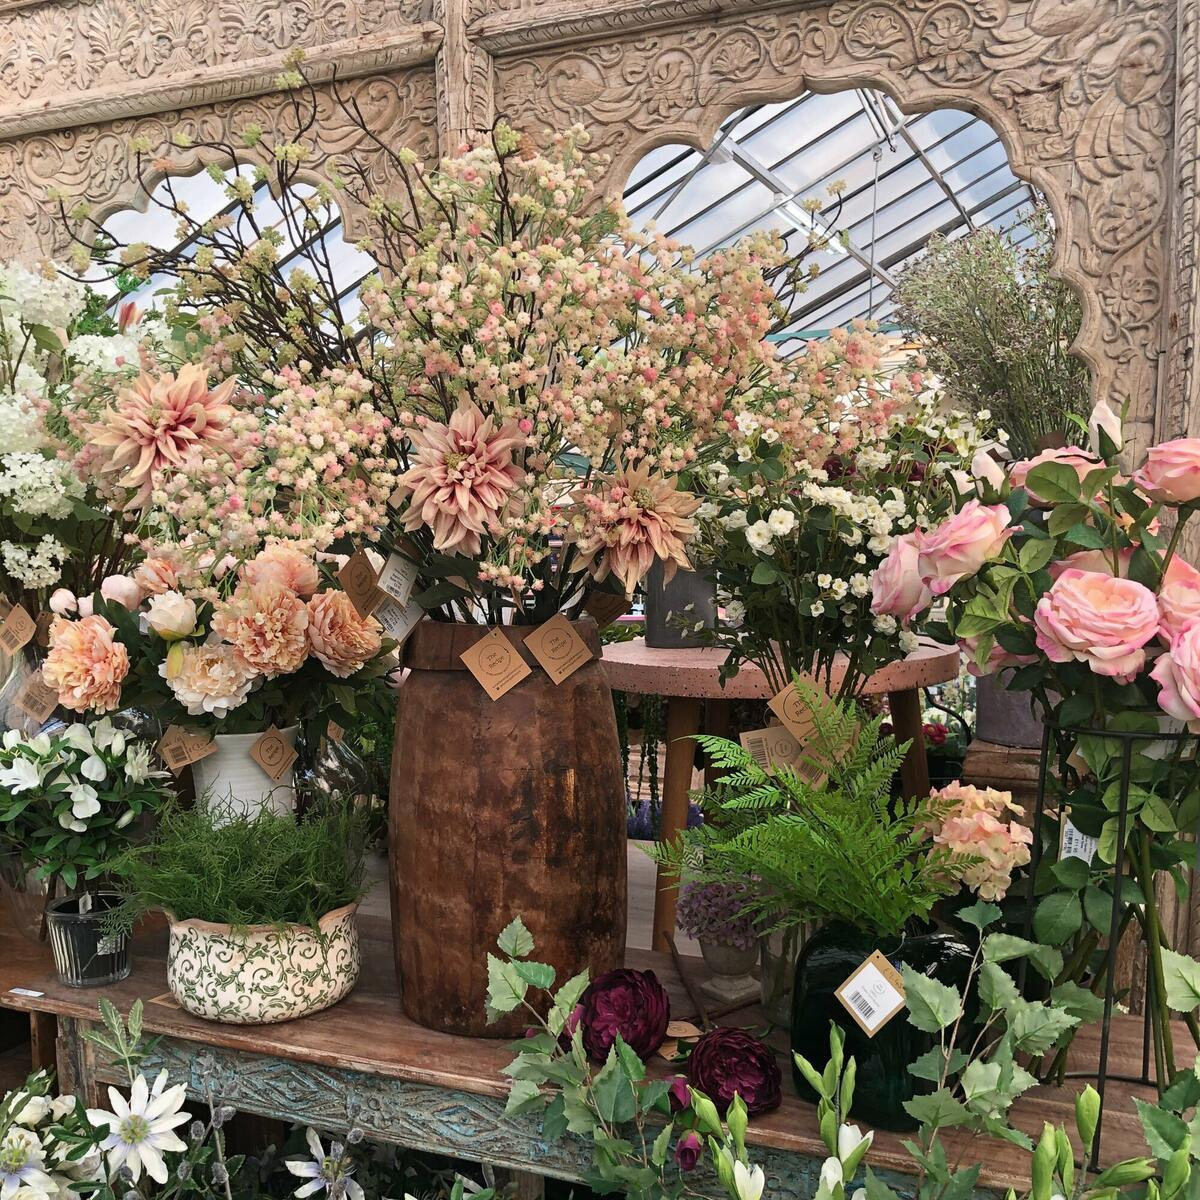 Silk flowers looking lovely against the salvage.